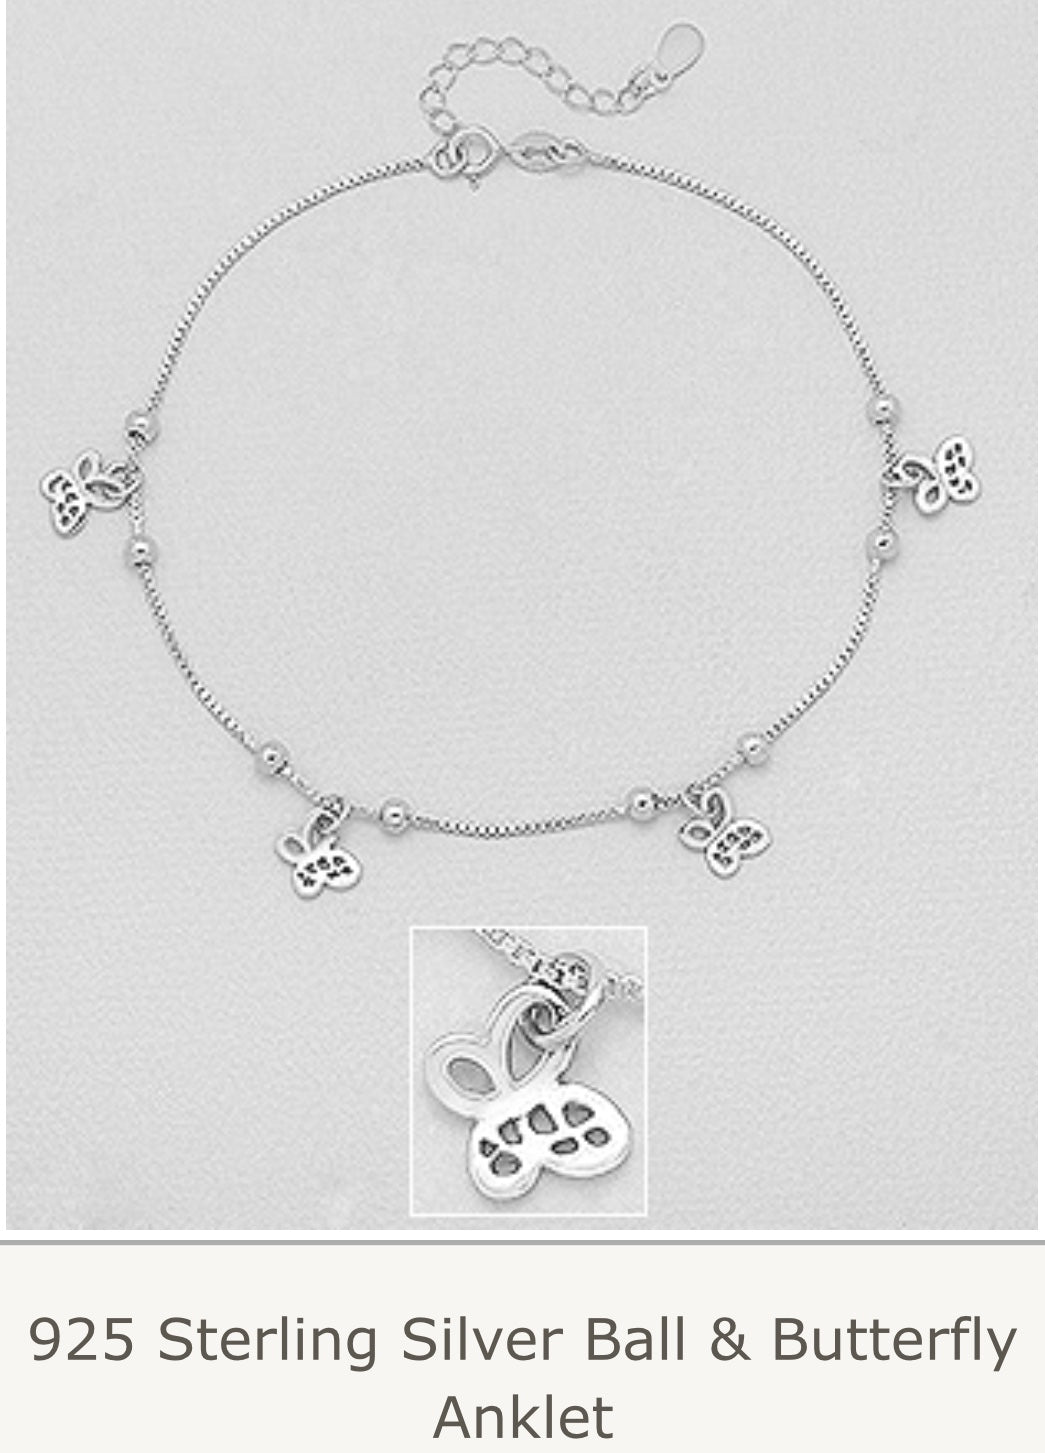 Butterfly cutout Anklet